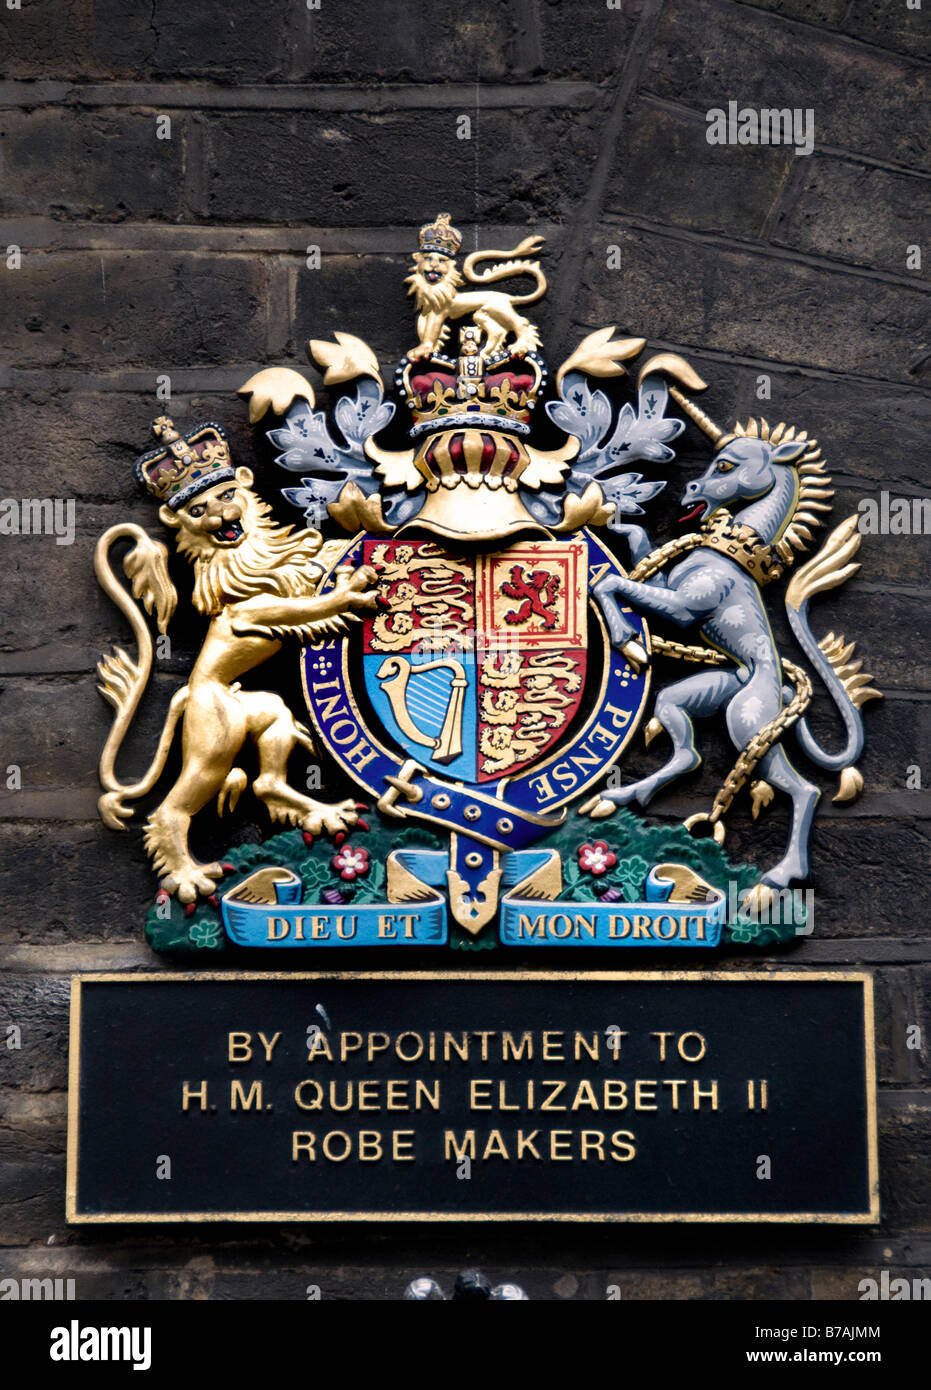 By appointment to H.M. Queen Elizabeth ll  2 Robe Makers Old Bond Street - Stock Image